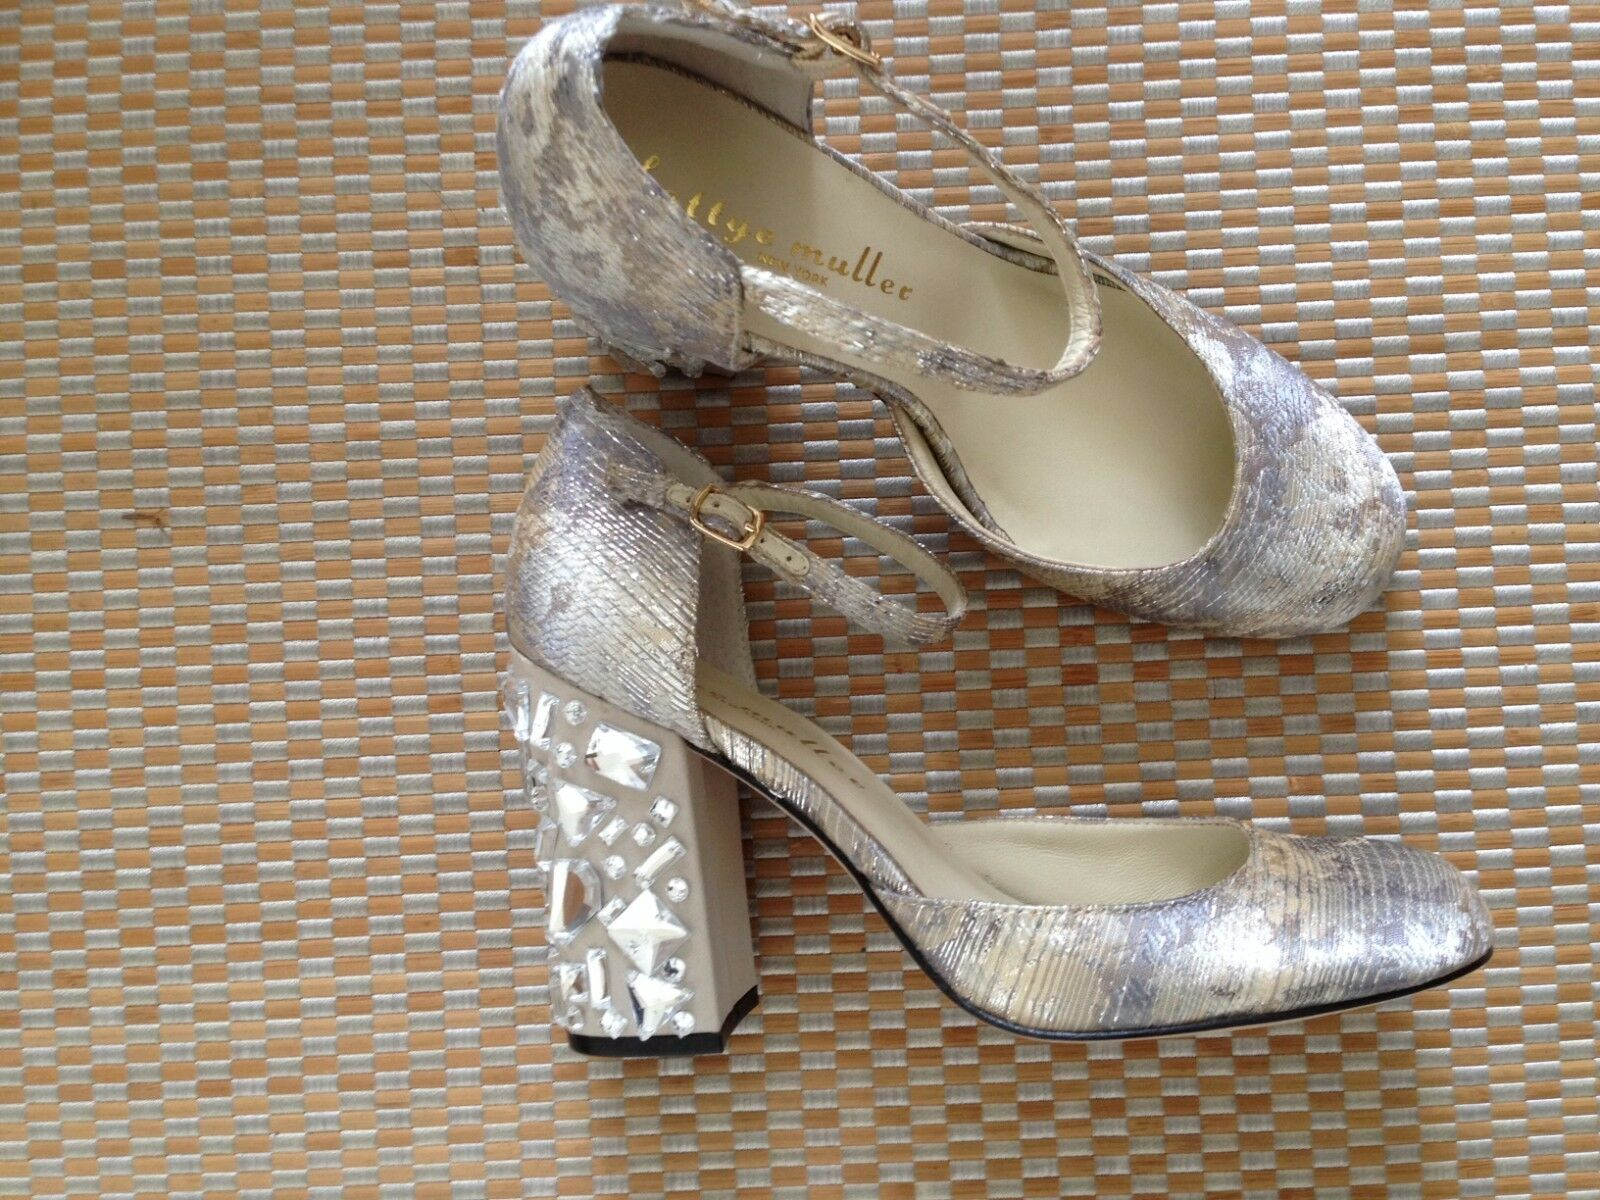 1c241e049 ... Bettye Muller New York Bejeweled Bejeweled Bejeweled Brocade shoes Sz.  9M 95df6a ...